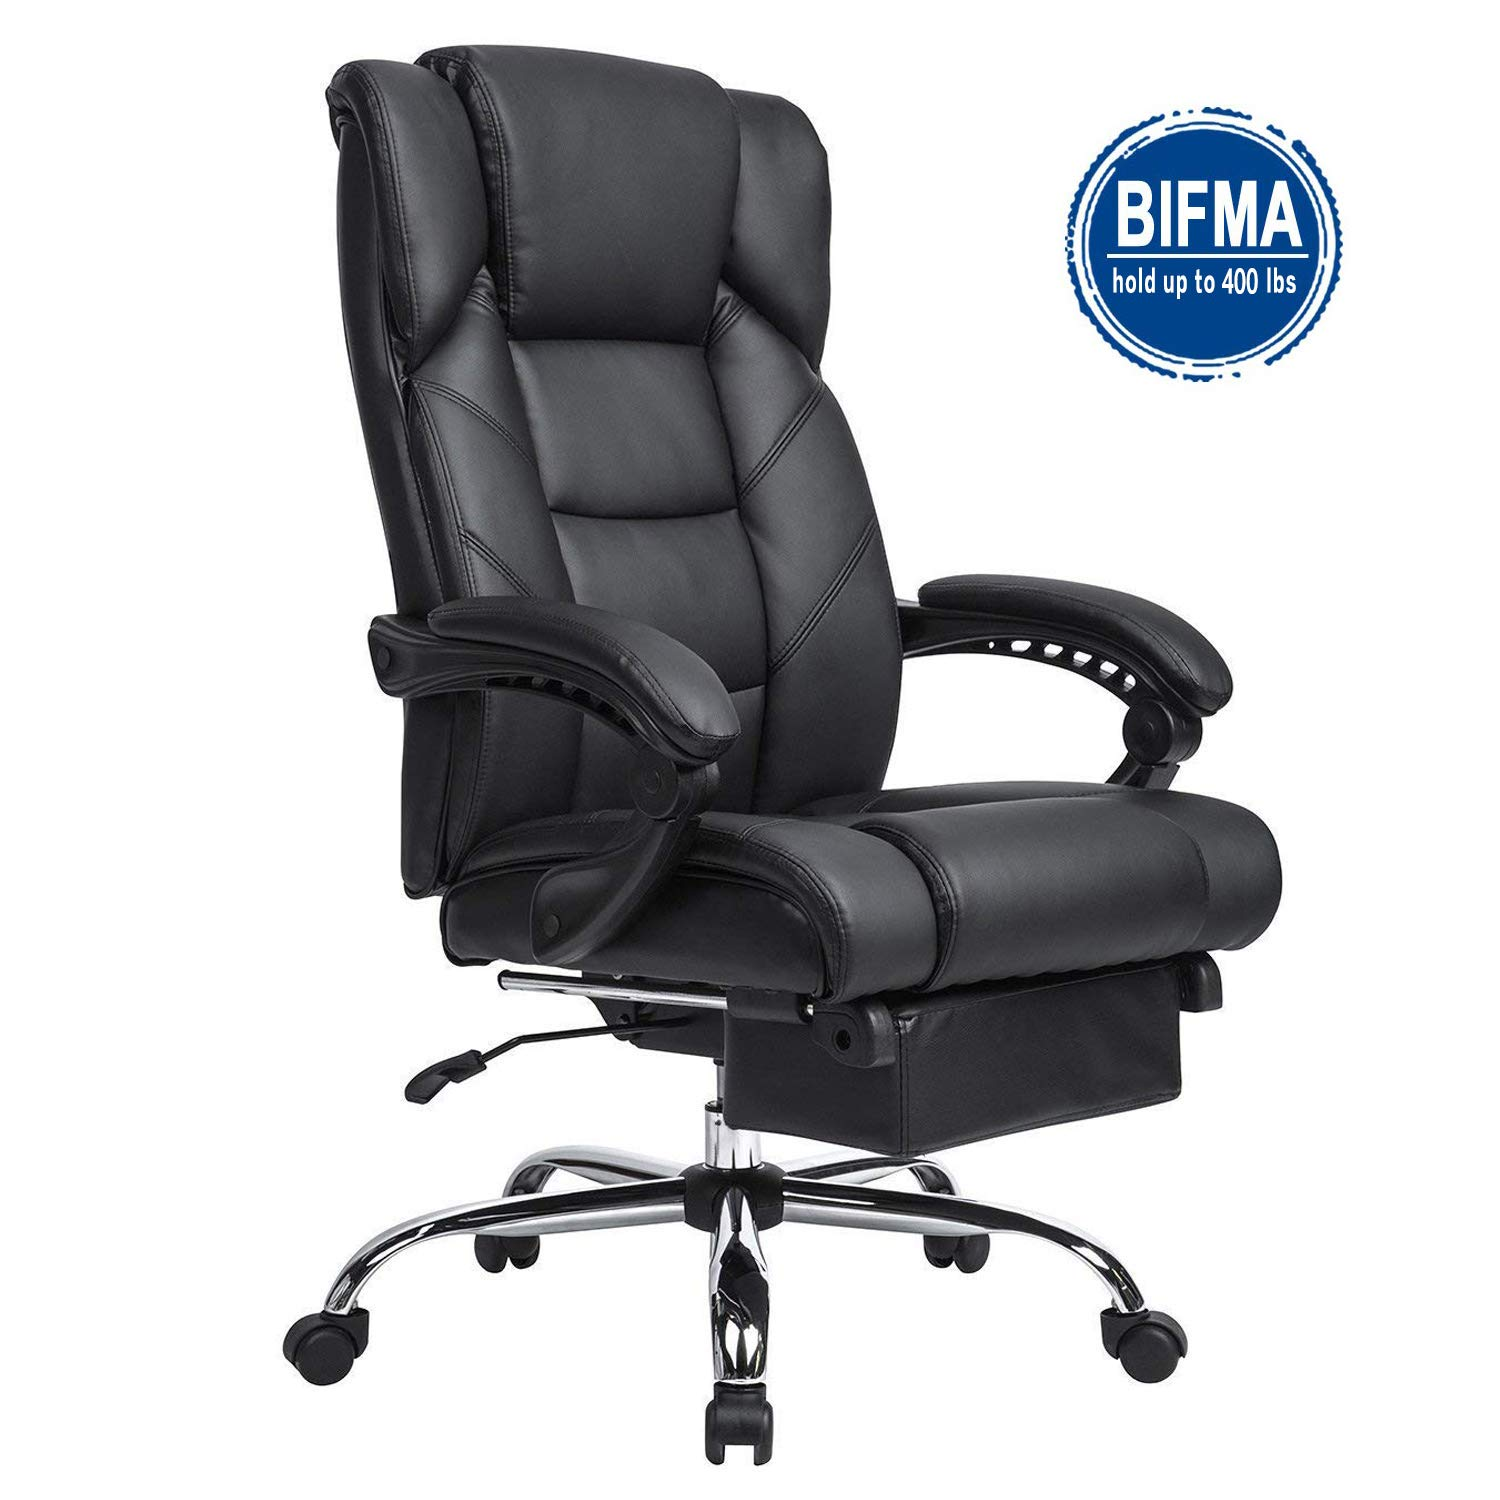 KADIRYA Reclining Leather Office Chair-High Back Executive Chair with Adjustable Angle Recline Locking System and Footrest Thick Padding for Comfort and Ergonomic Design 400LBS by KADIRYA